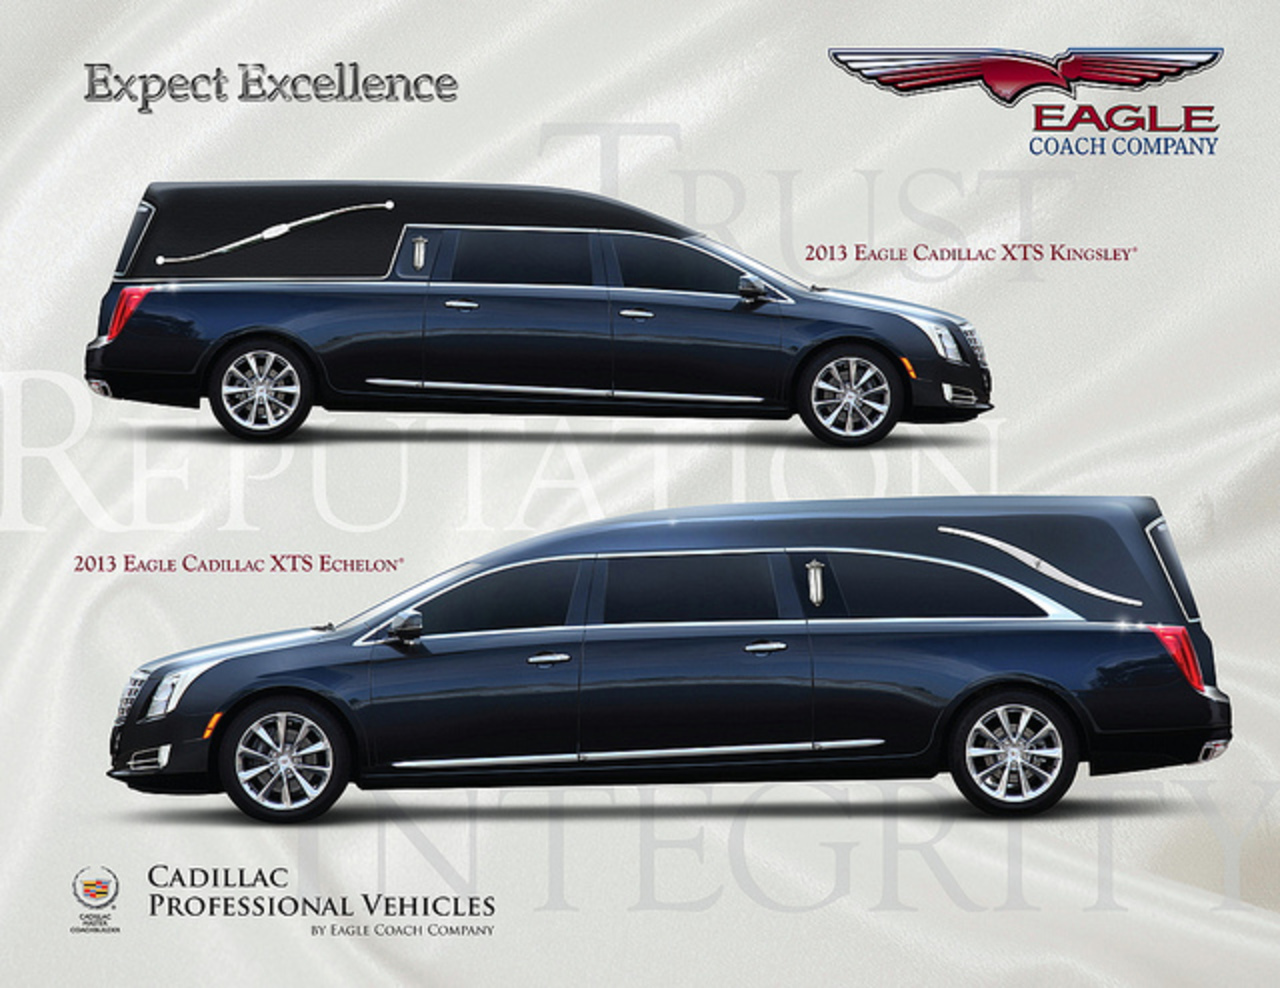 2013 Cadillac hearse | Flickr - Photo Sharing!